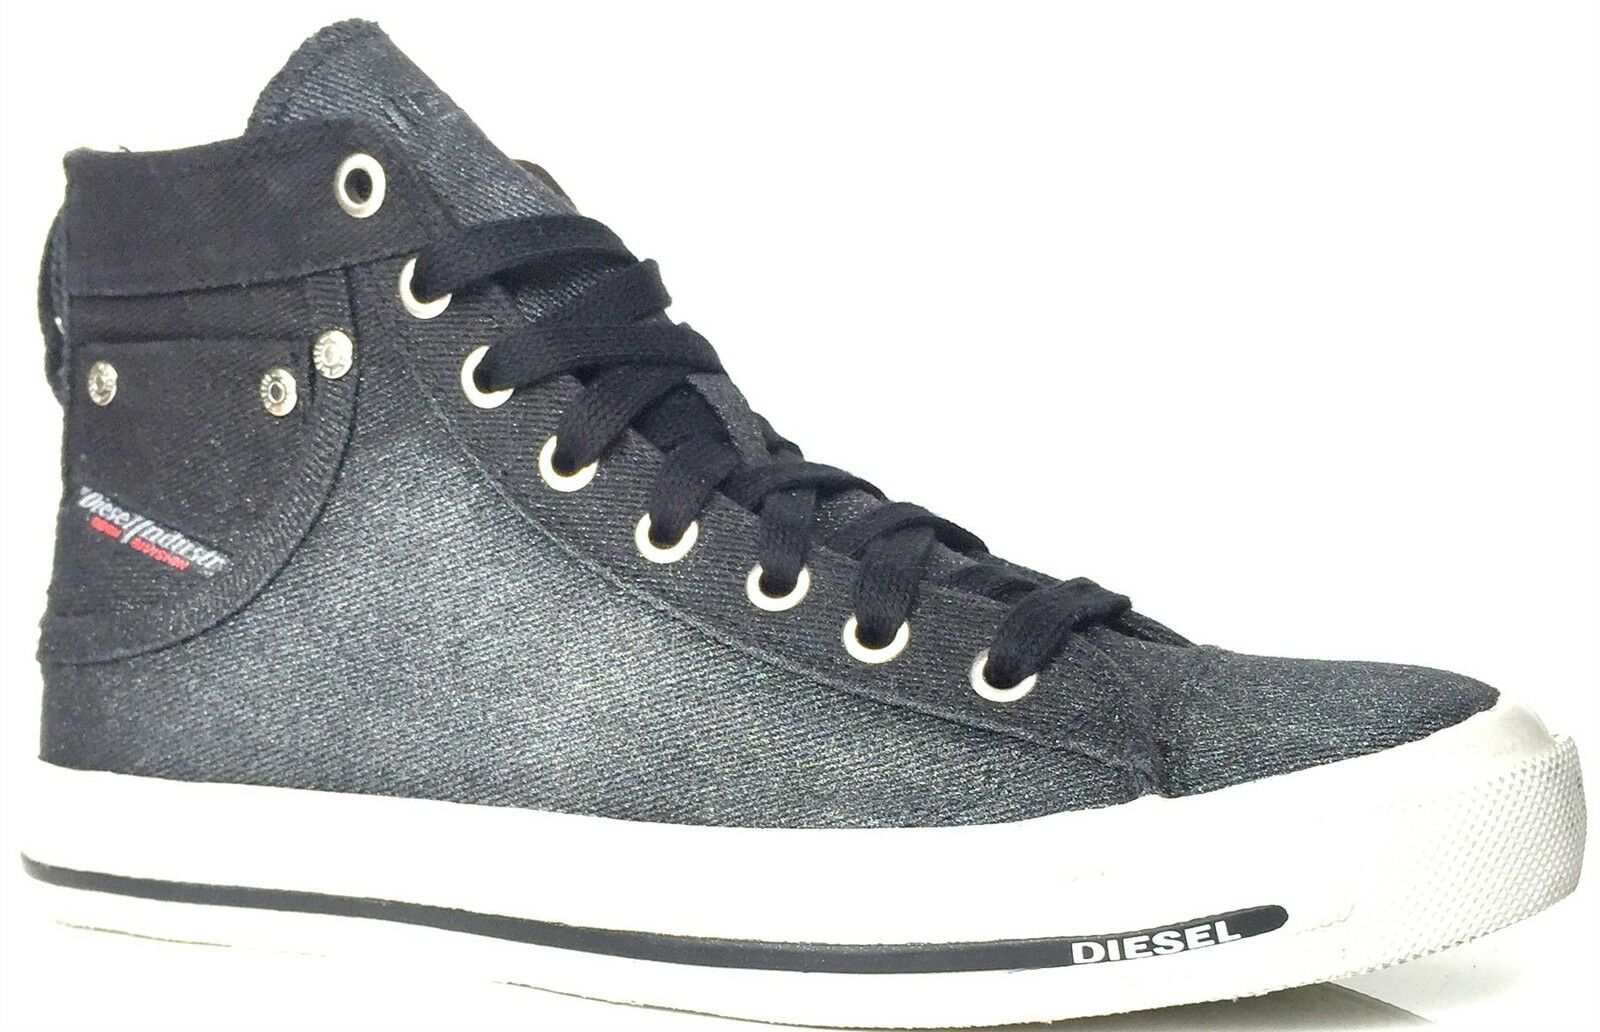 Diesel Exposure IV W Noir Glitter Womens Canvas Trainers Boots